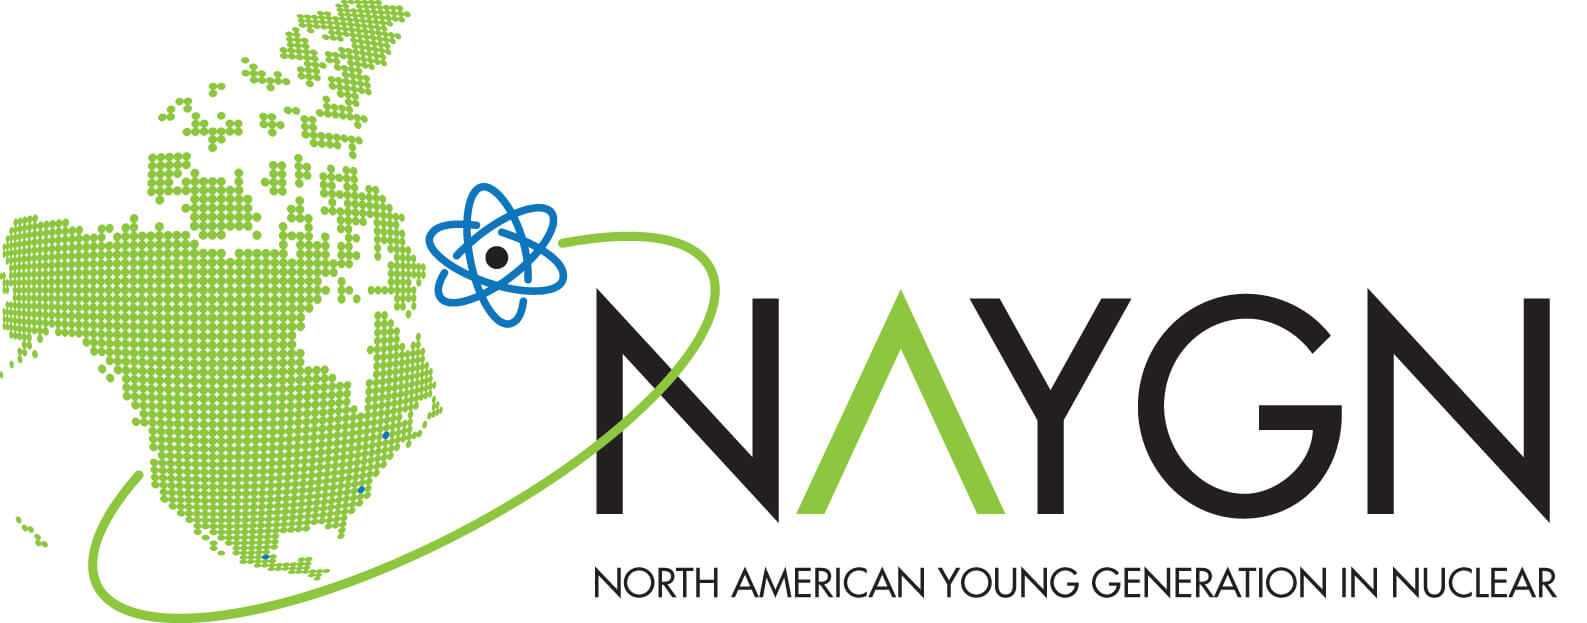 NAYGN North American Young Generation in Nuclear